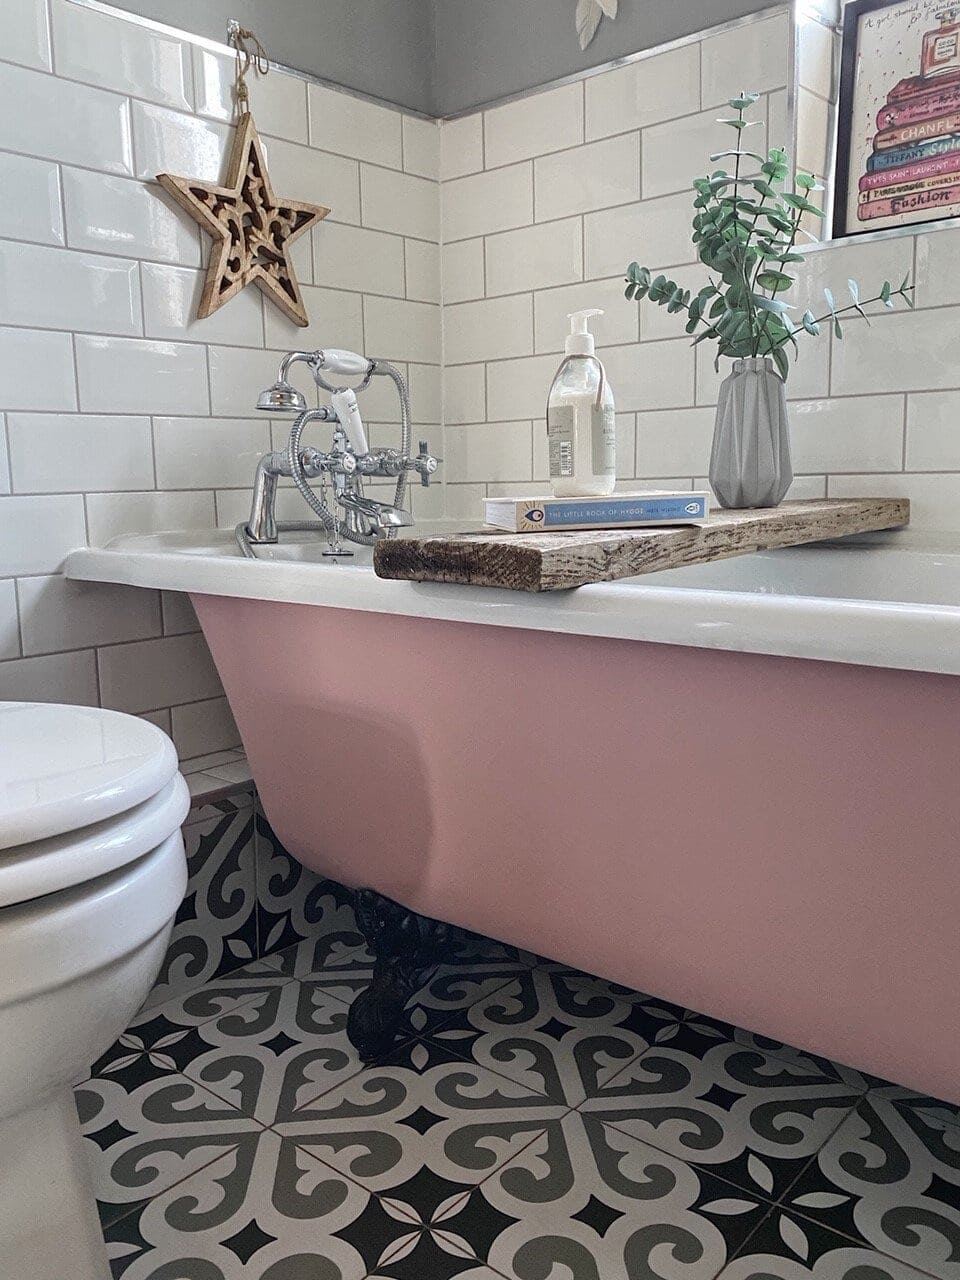 Bathroom, bathroom renovation, renovation, redecorating, bath, bath tub, paint bath, roll top bath, roll top, bathroom design, bath design, patterned tiles, pink, pink decor, tiles, grey, grey decor, flowers, DIY, DIY bathroom, DIY paint, paint, painting, interiors, interior styling